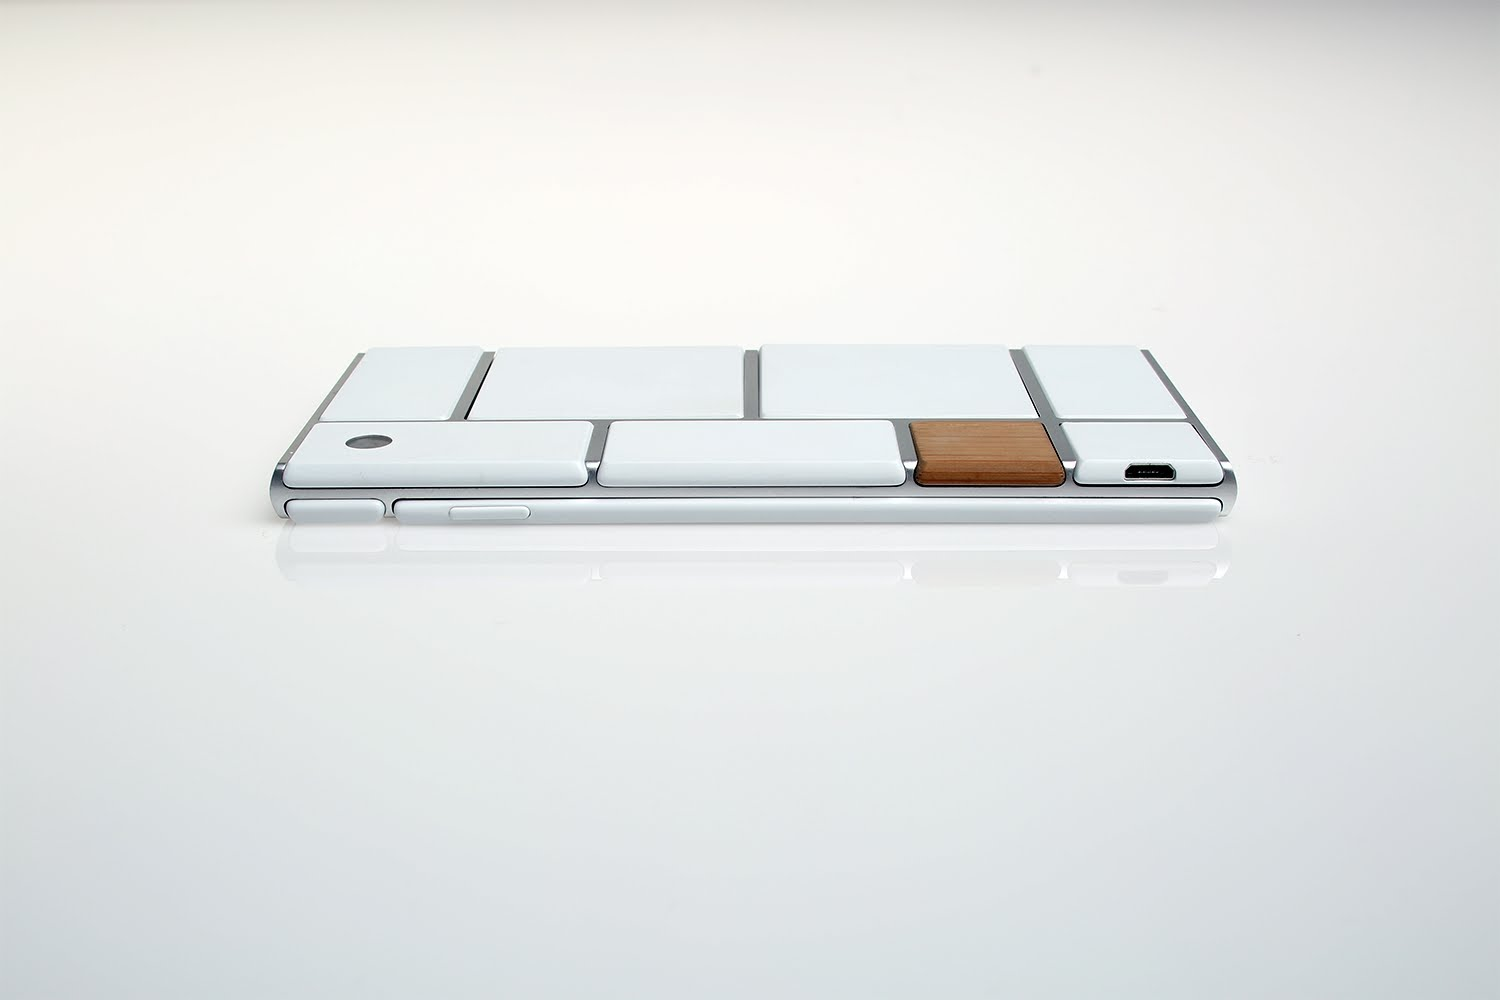 Google's Project Ara modular smartphone is for real